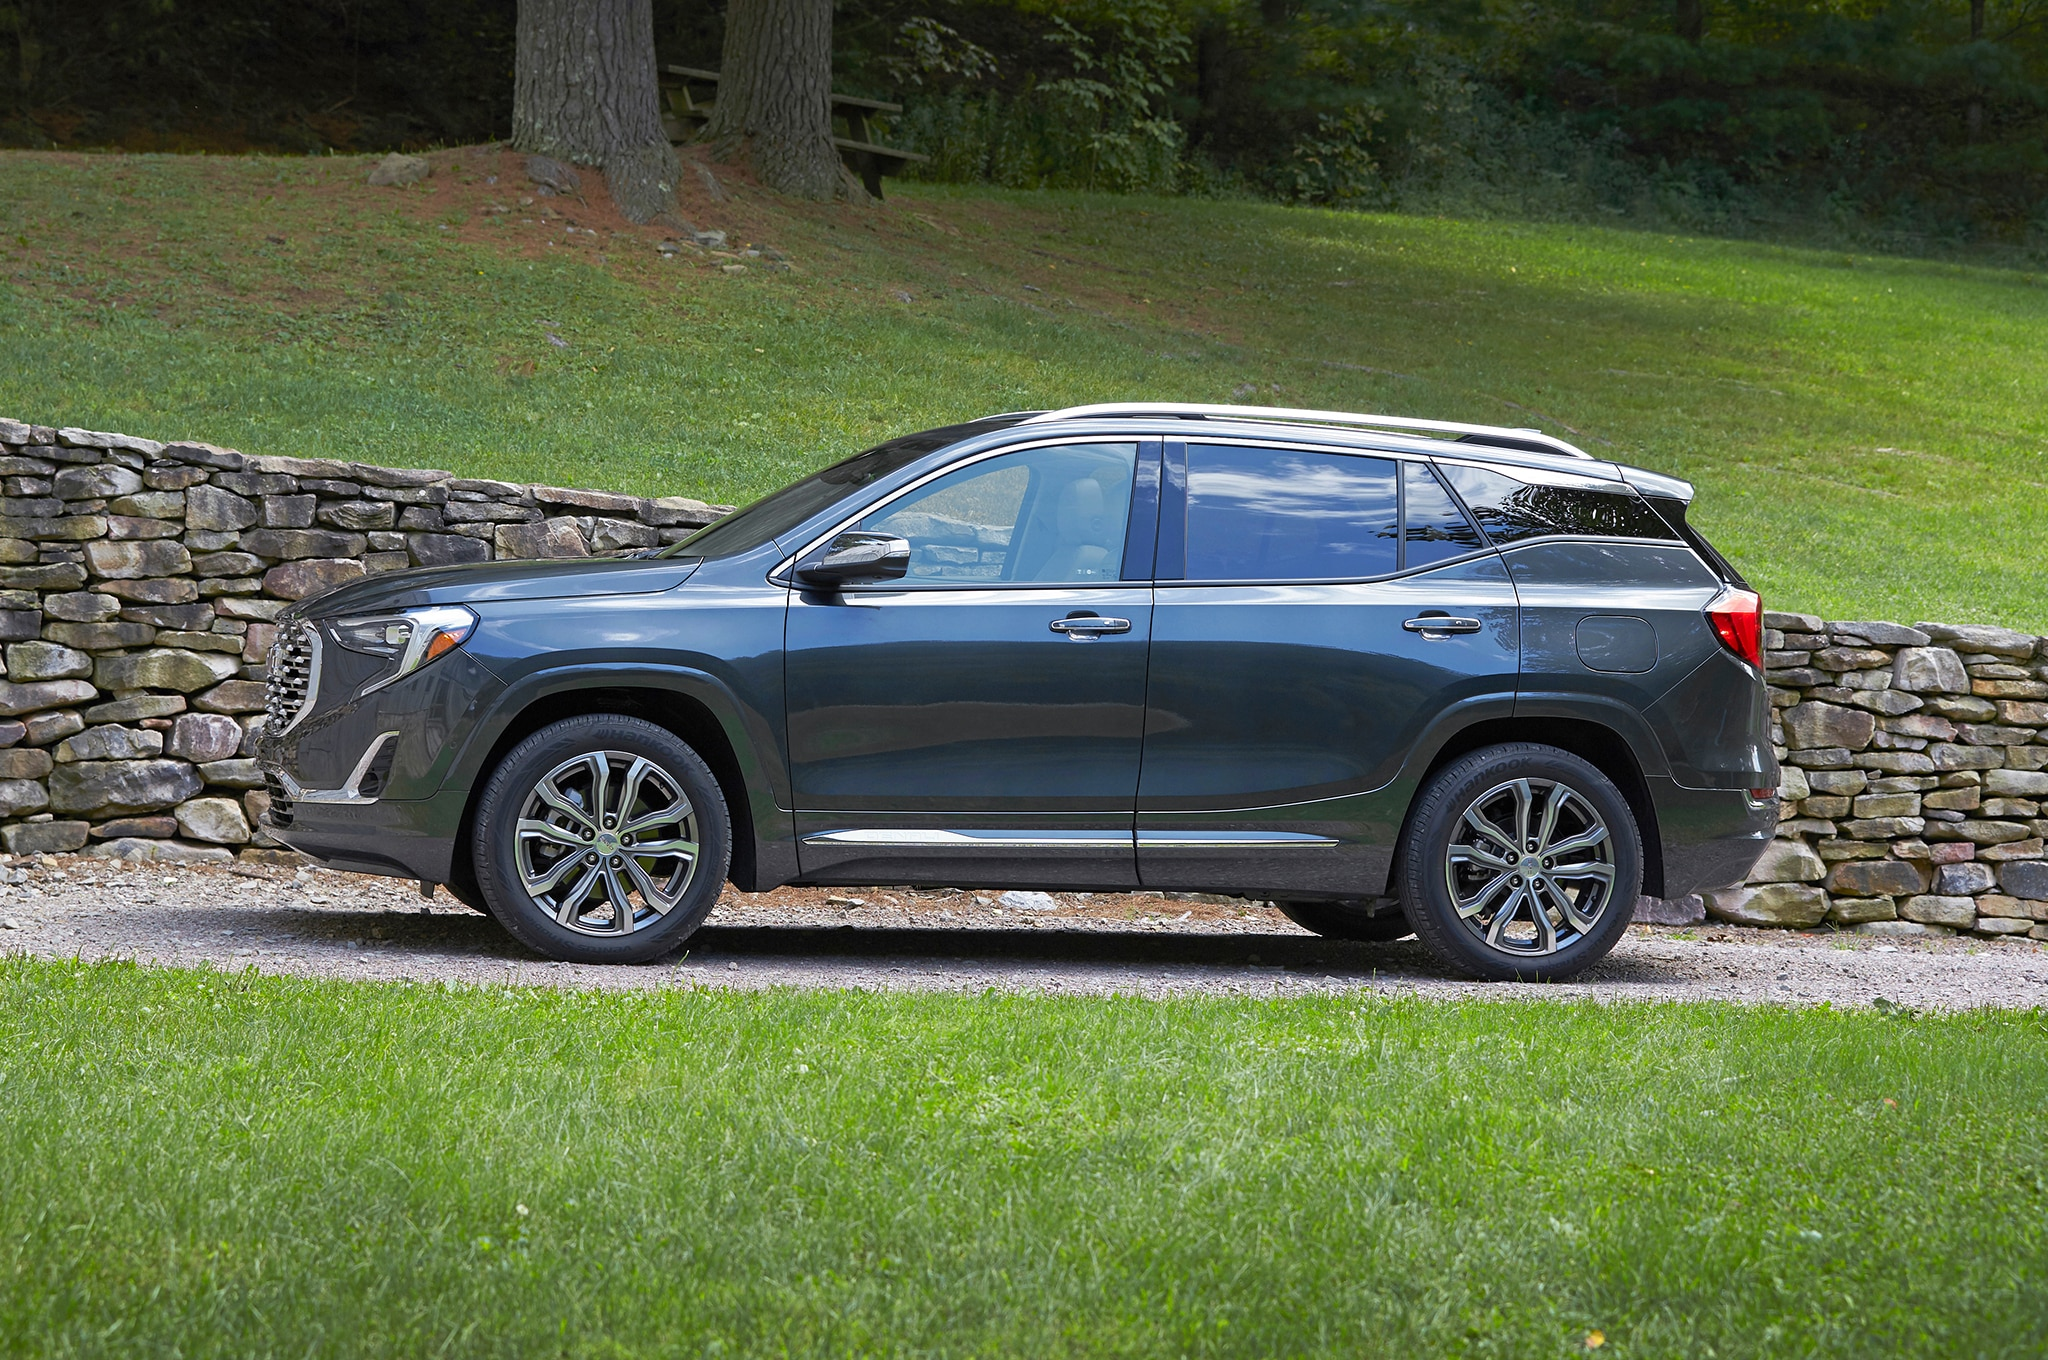 and choices facing slashgear suv liter initially the buyers trio terrain are top review photo drive gmc s reviews although big four vehicle been small of a has cylinder under first ambition tier older hood banished